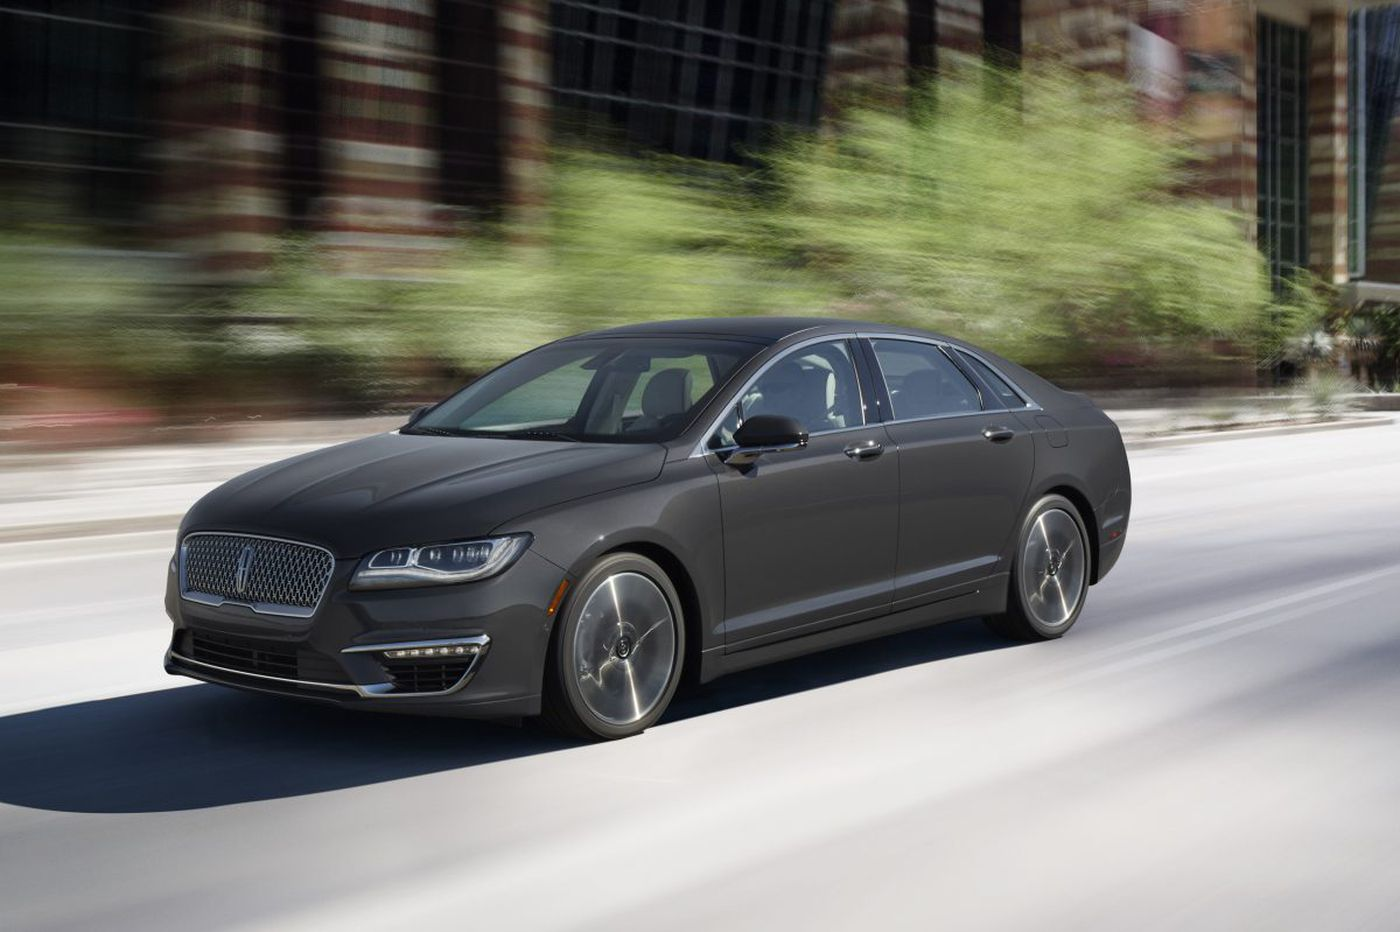 Not just a pretty face, this new Lincoln MKZ